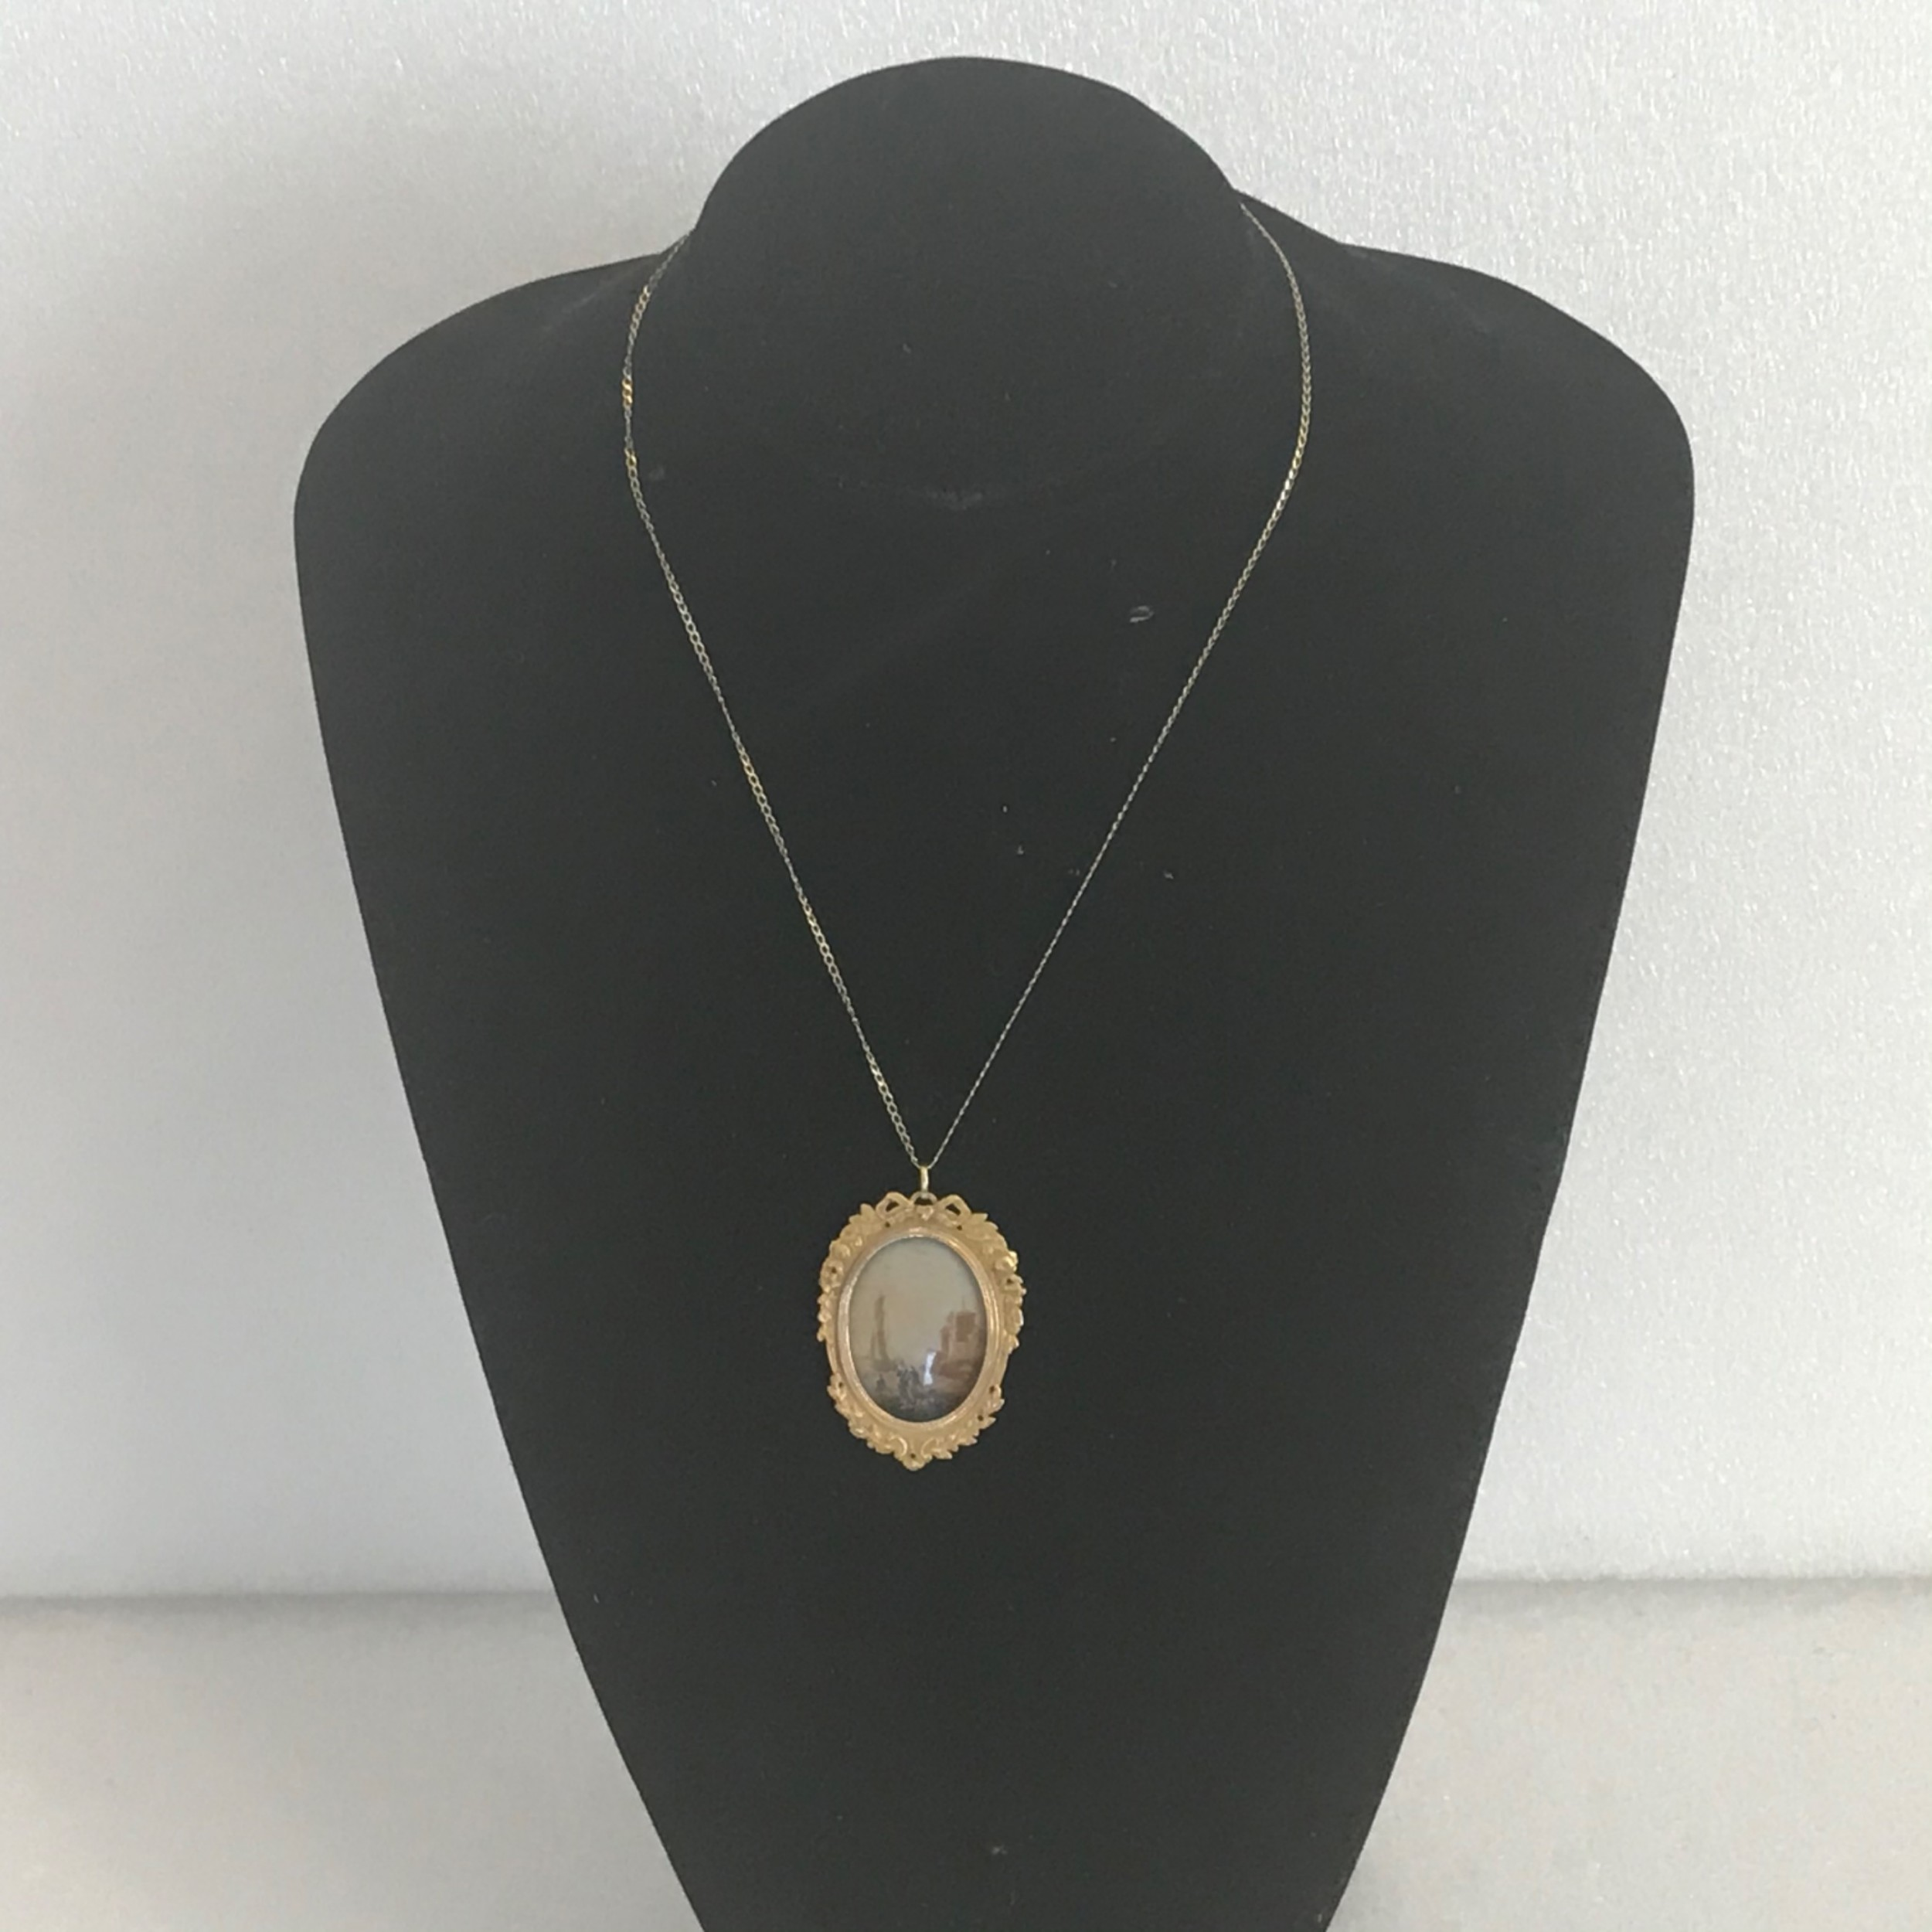 painting miniature georgian gold framed pendant and chain